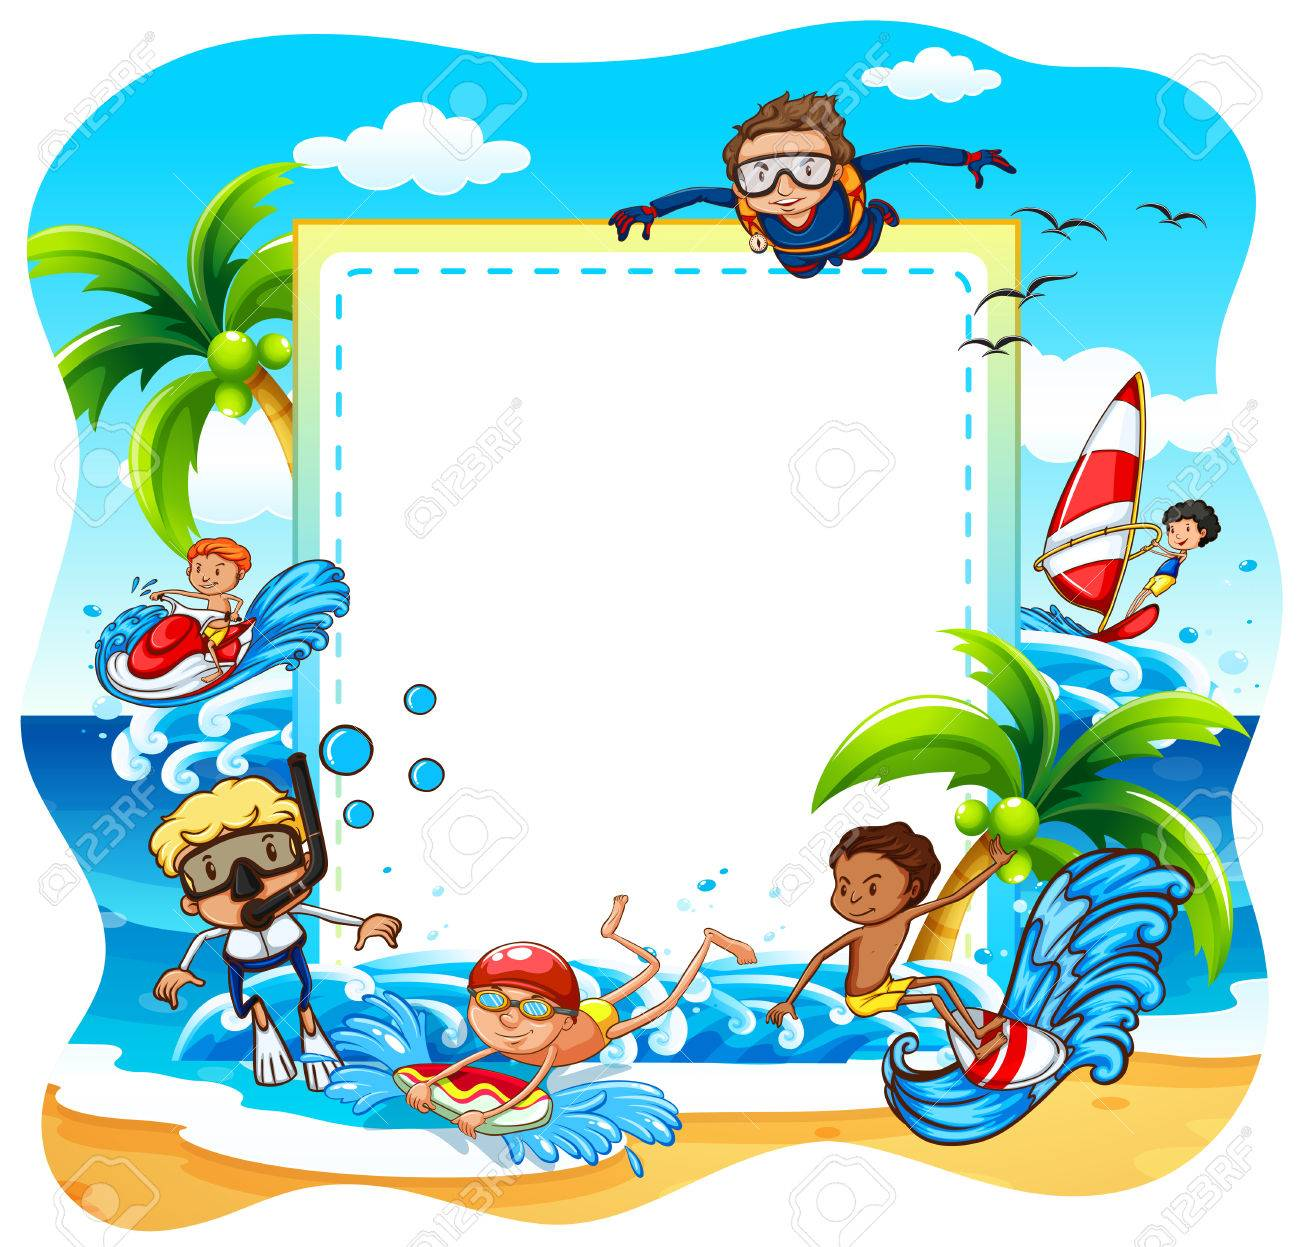 Frame Of Children Enjoying The Beach Activities Stock Vector